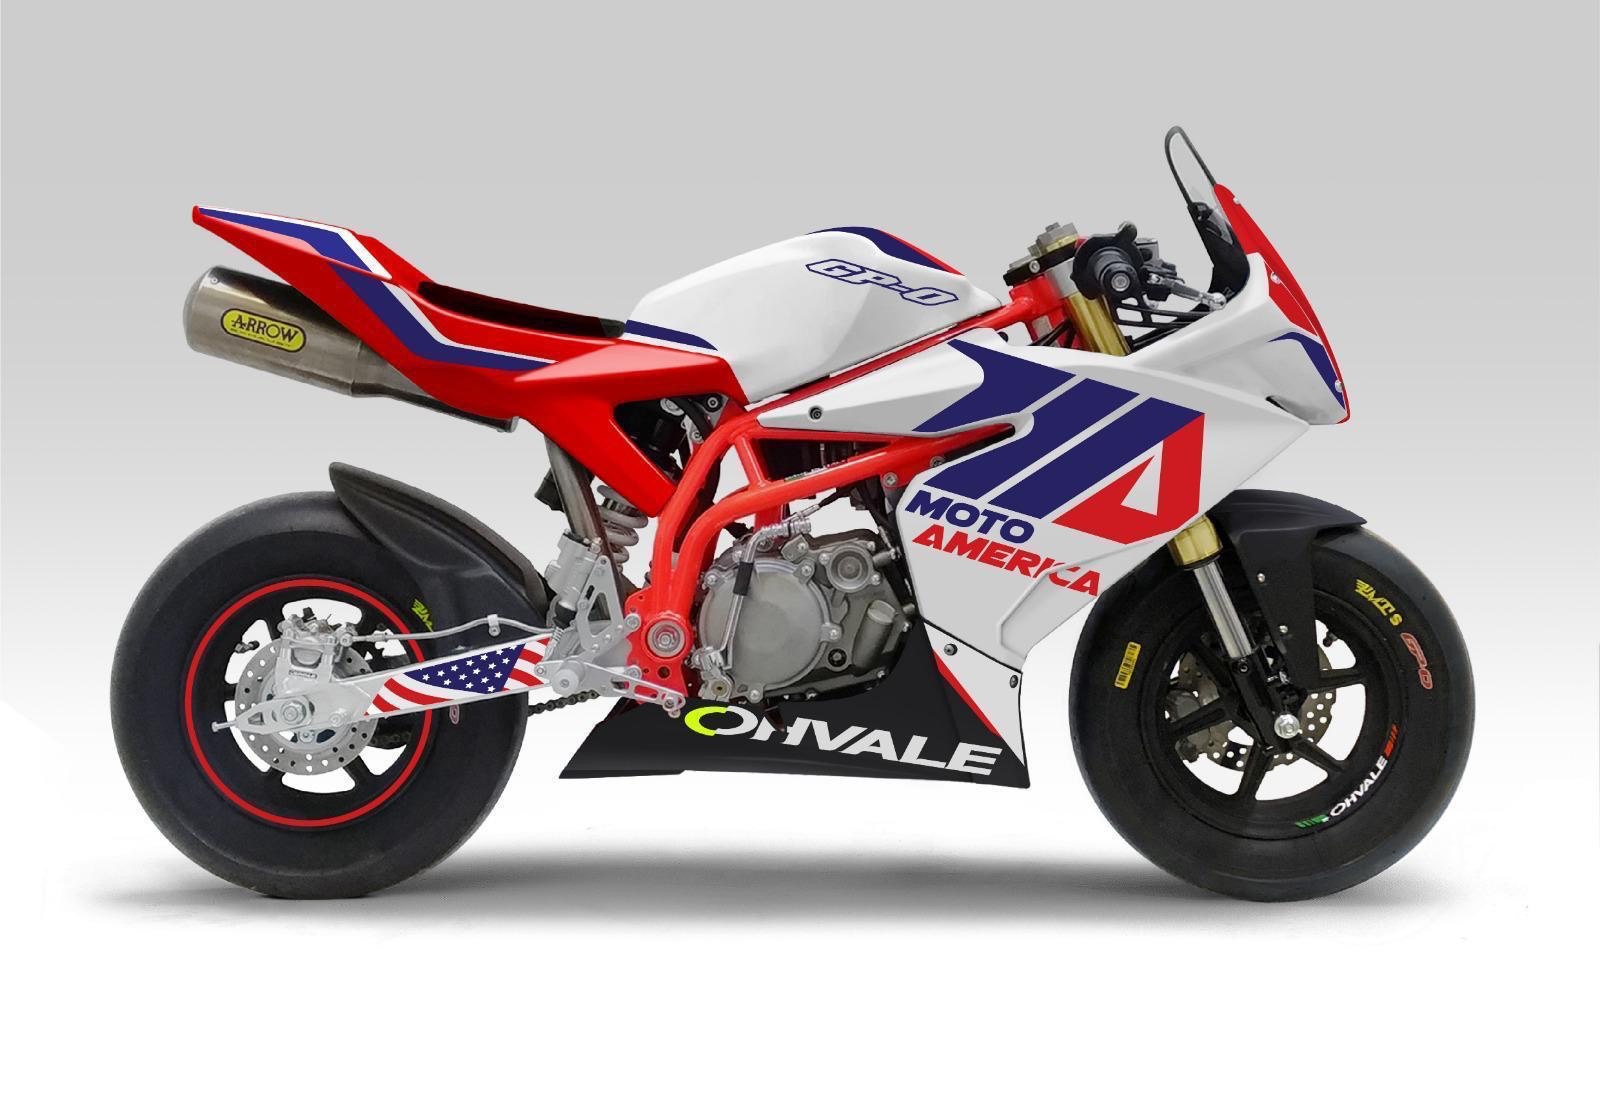 The new MotoAmerica Mini Cup is centered around purpose-built Ohvale mini road race bikes. Photo courtesy of MotoAmerica.